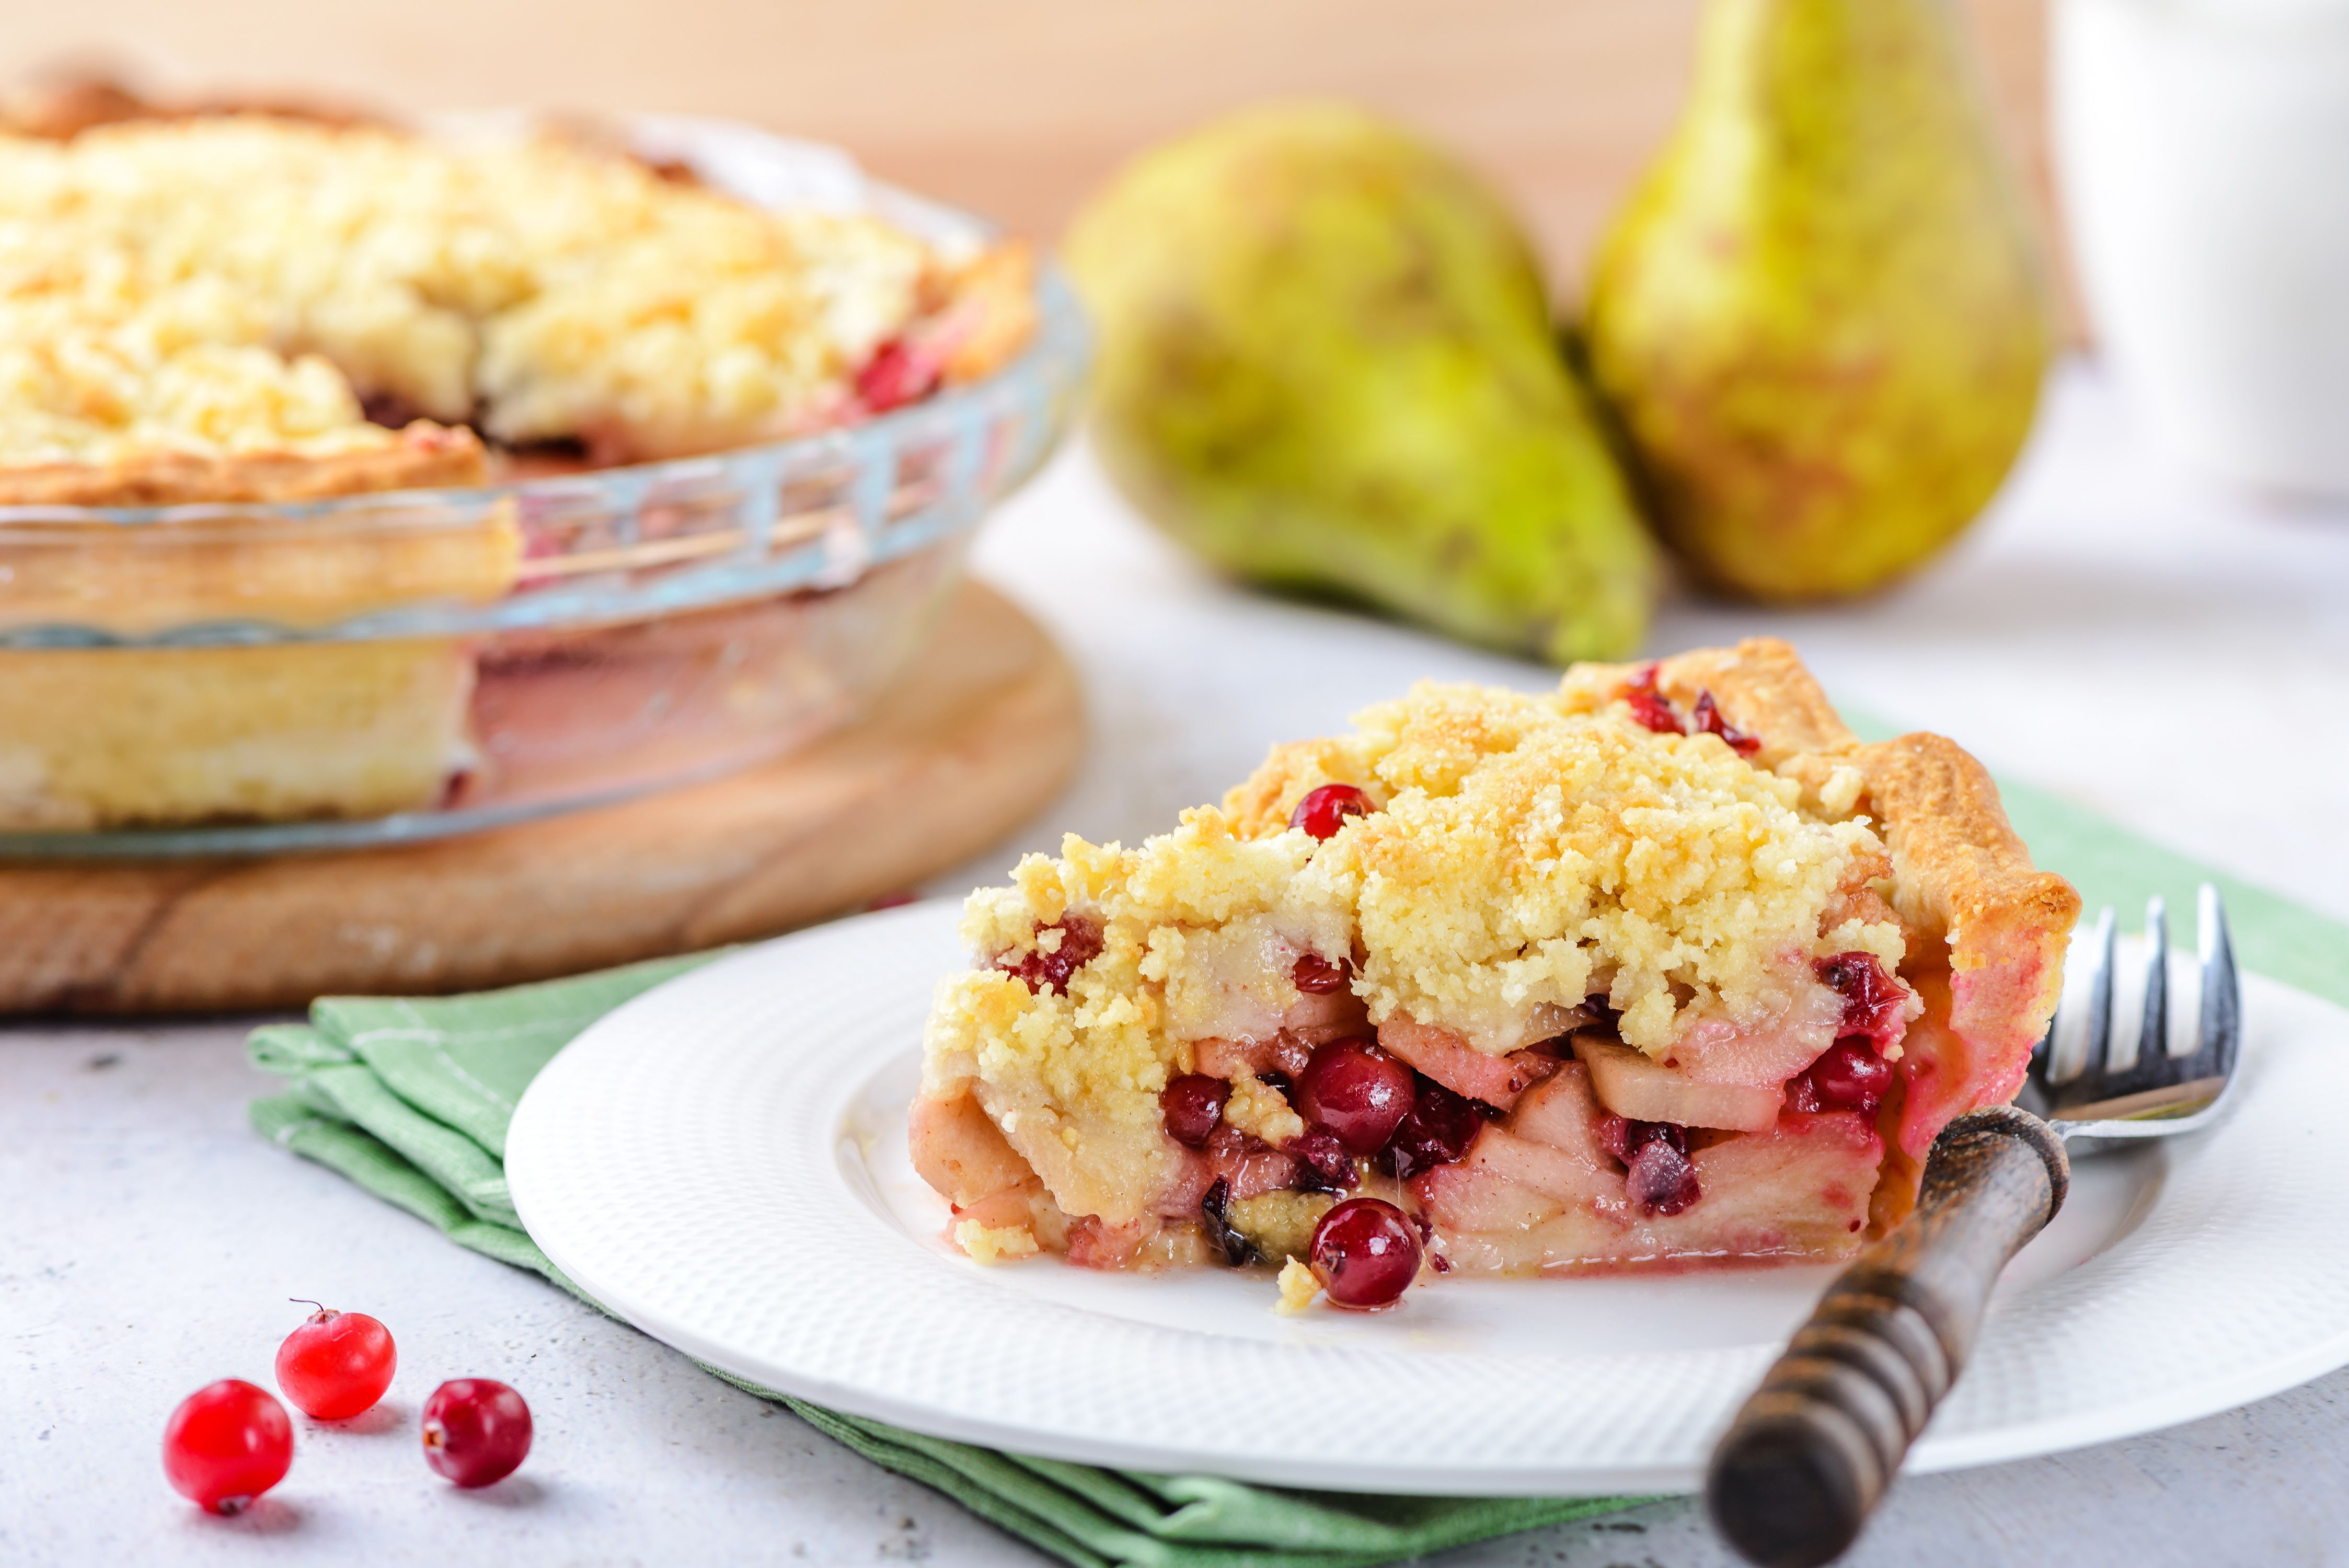 Vegan Cranberry and Pear Holiday Pie Recipe